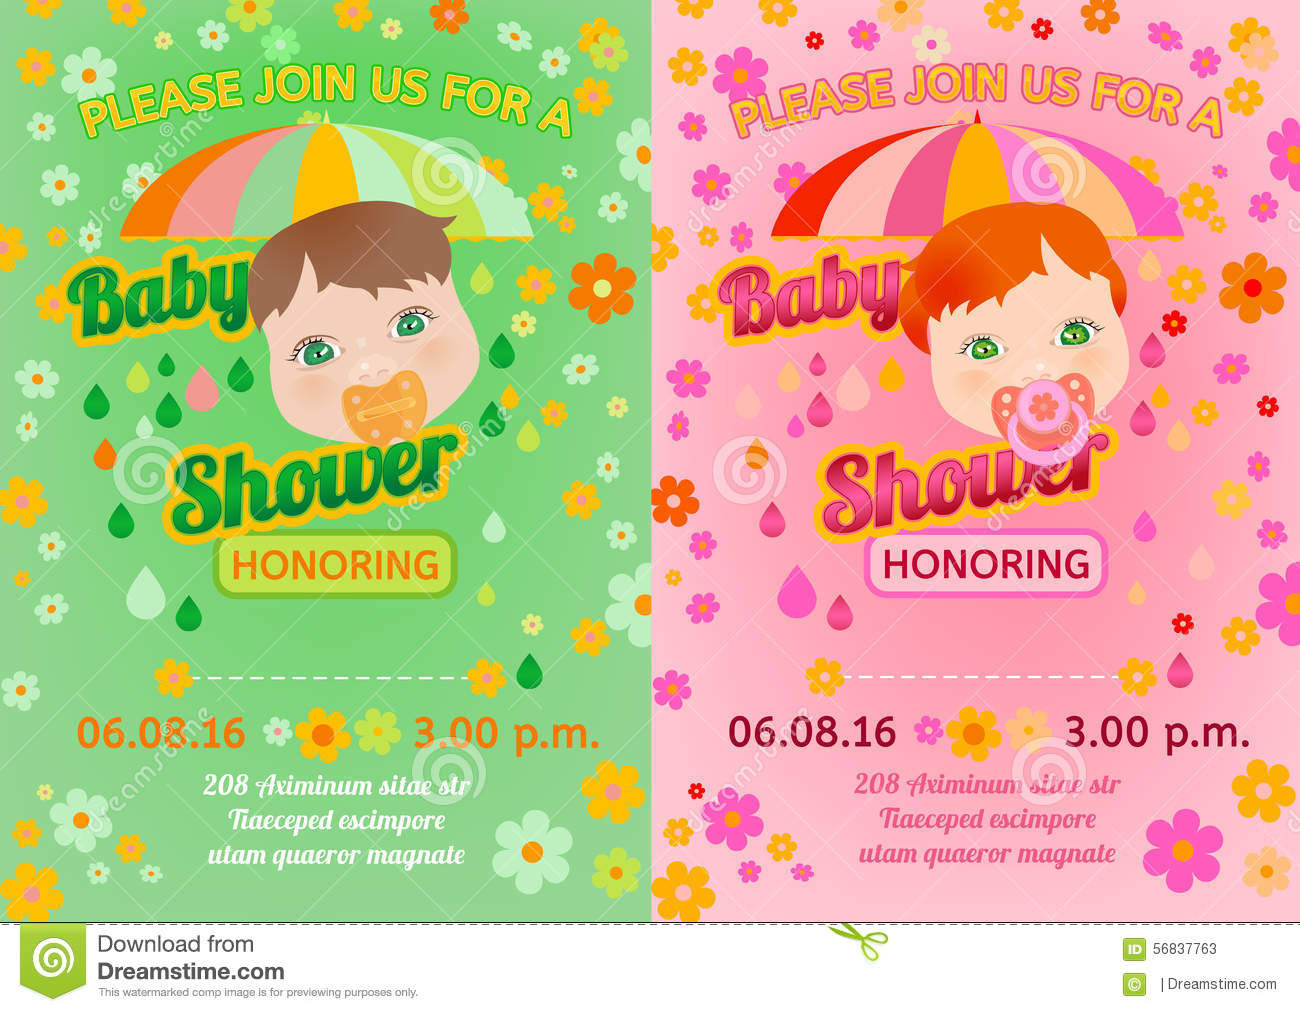 Baby Shower Message Card Vector Image 56837763 – Baby Shower Message